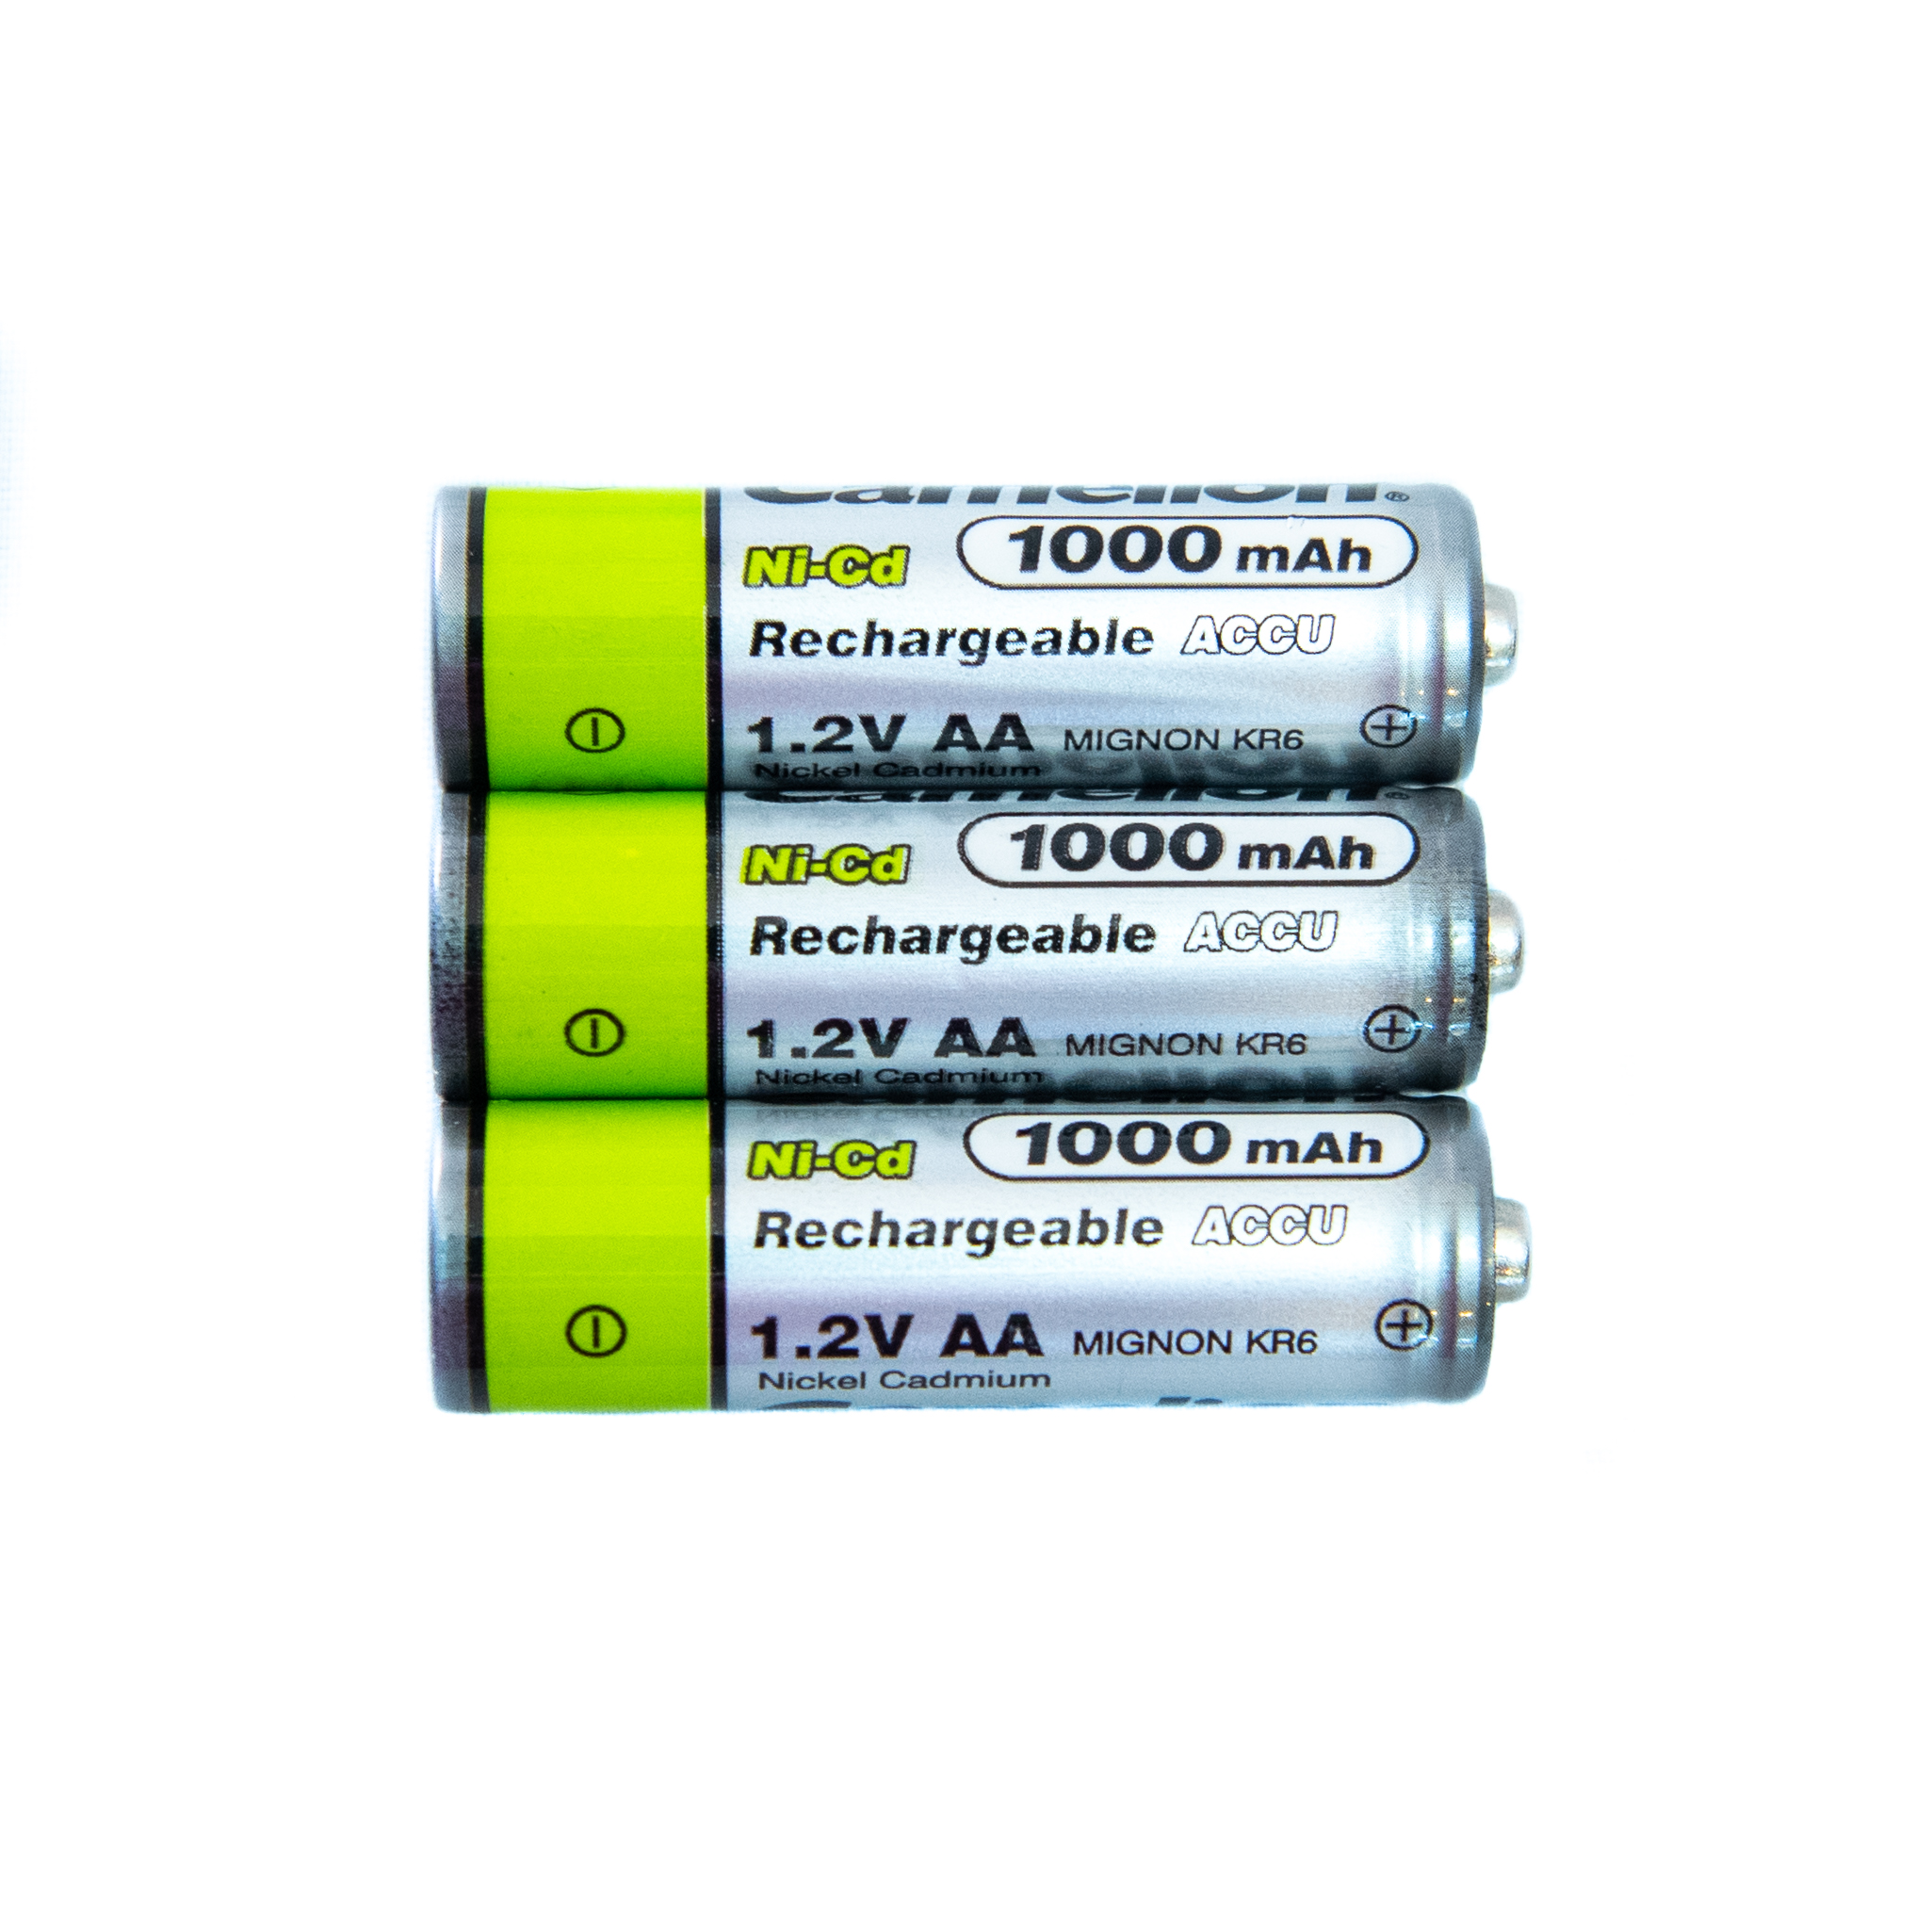 Battery Pack of 3